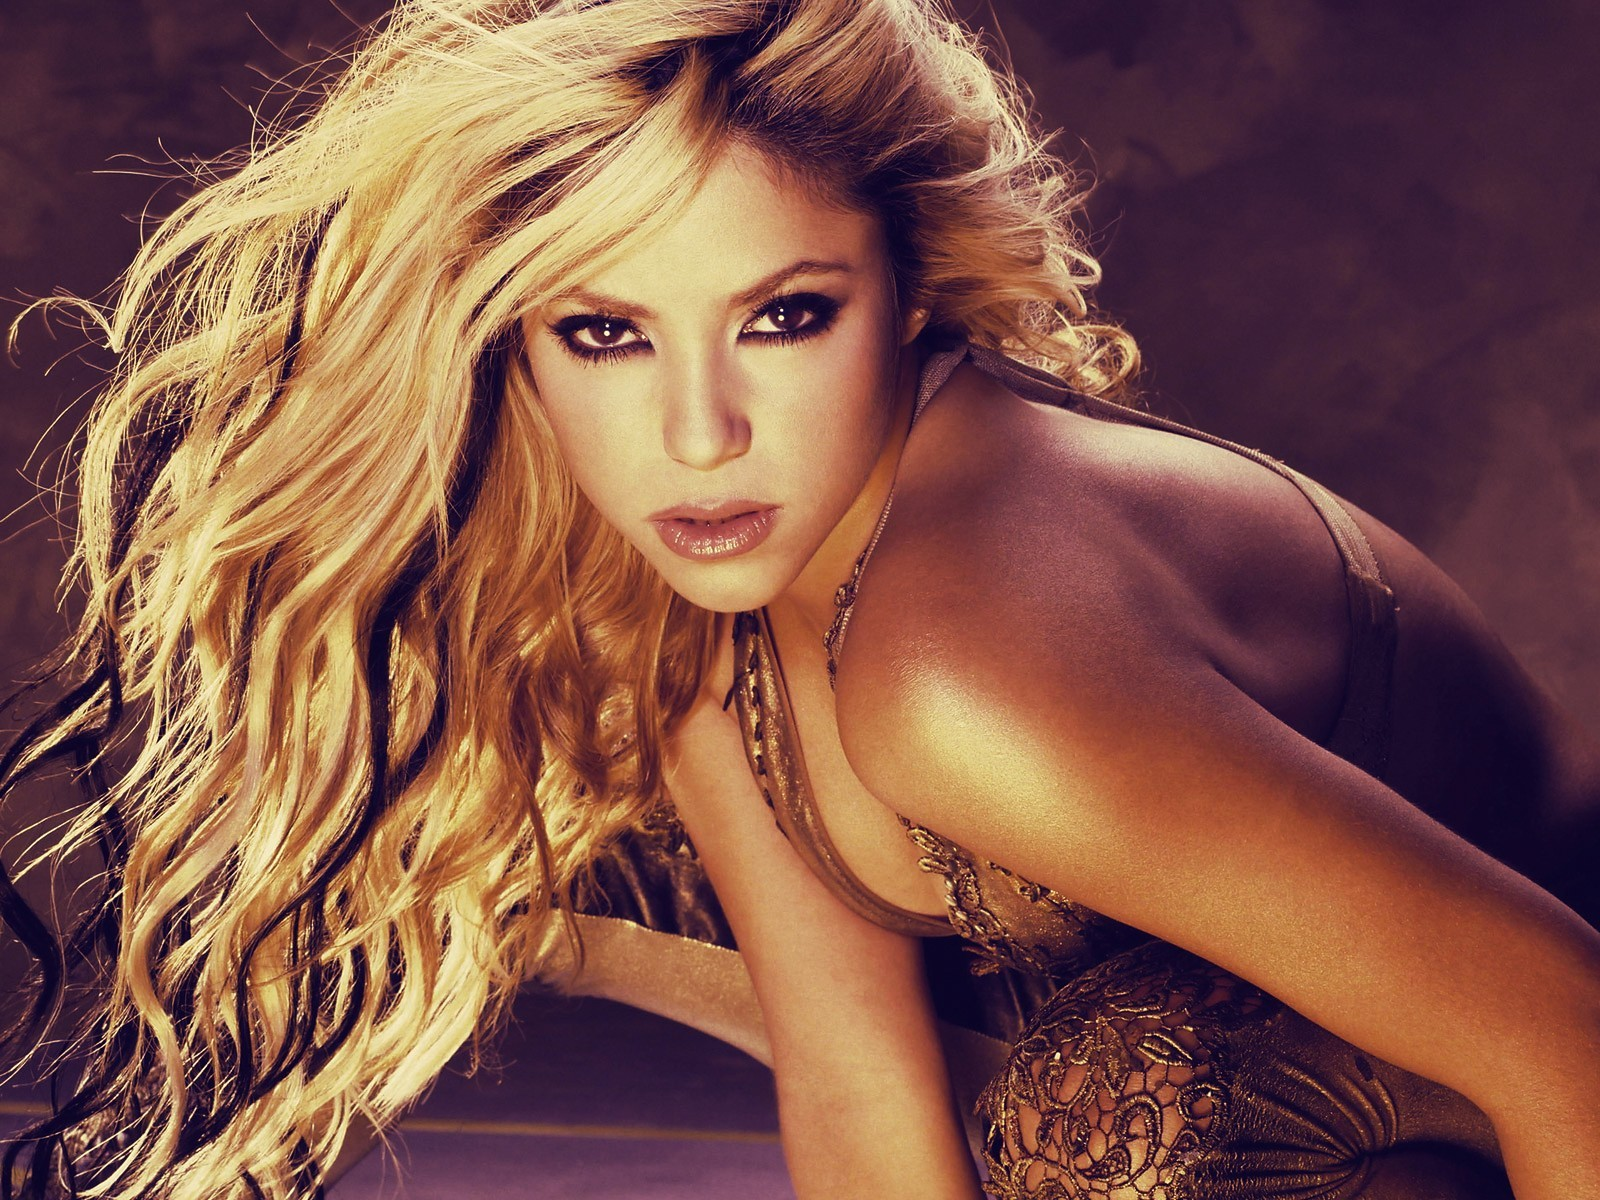 shakira colombia singers HD Wallpaper